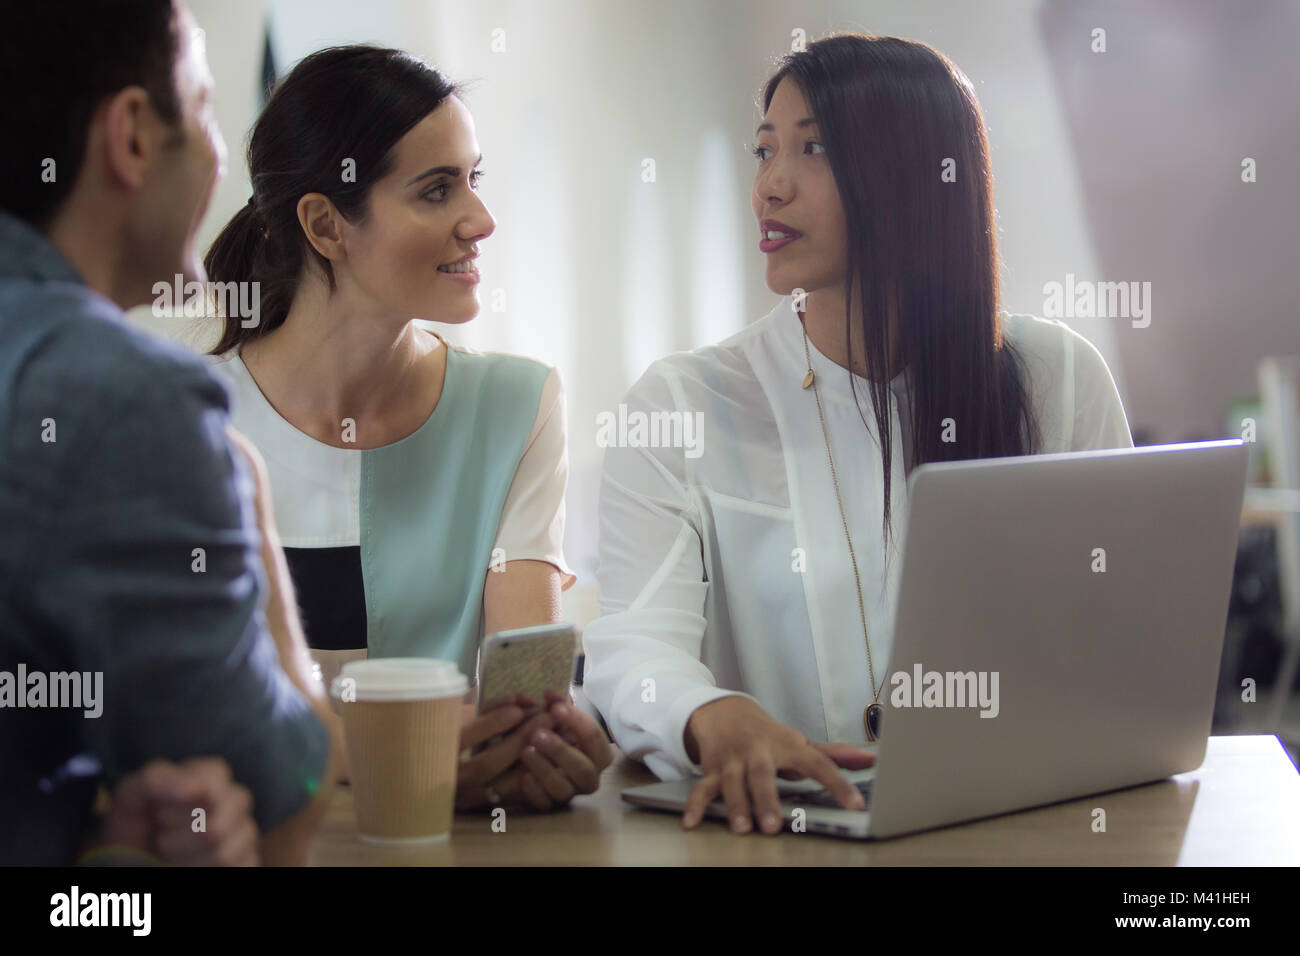 Colleagues in café looking at laptop - Stock Image